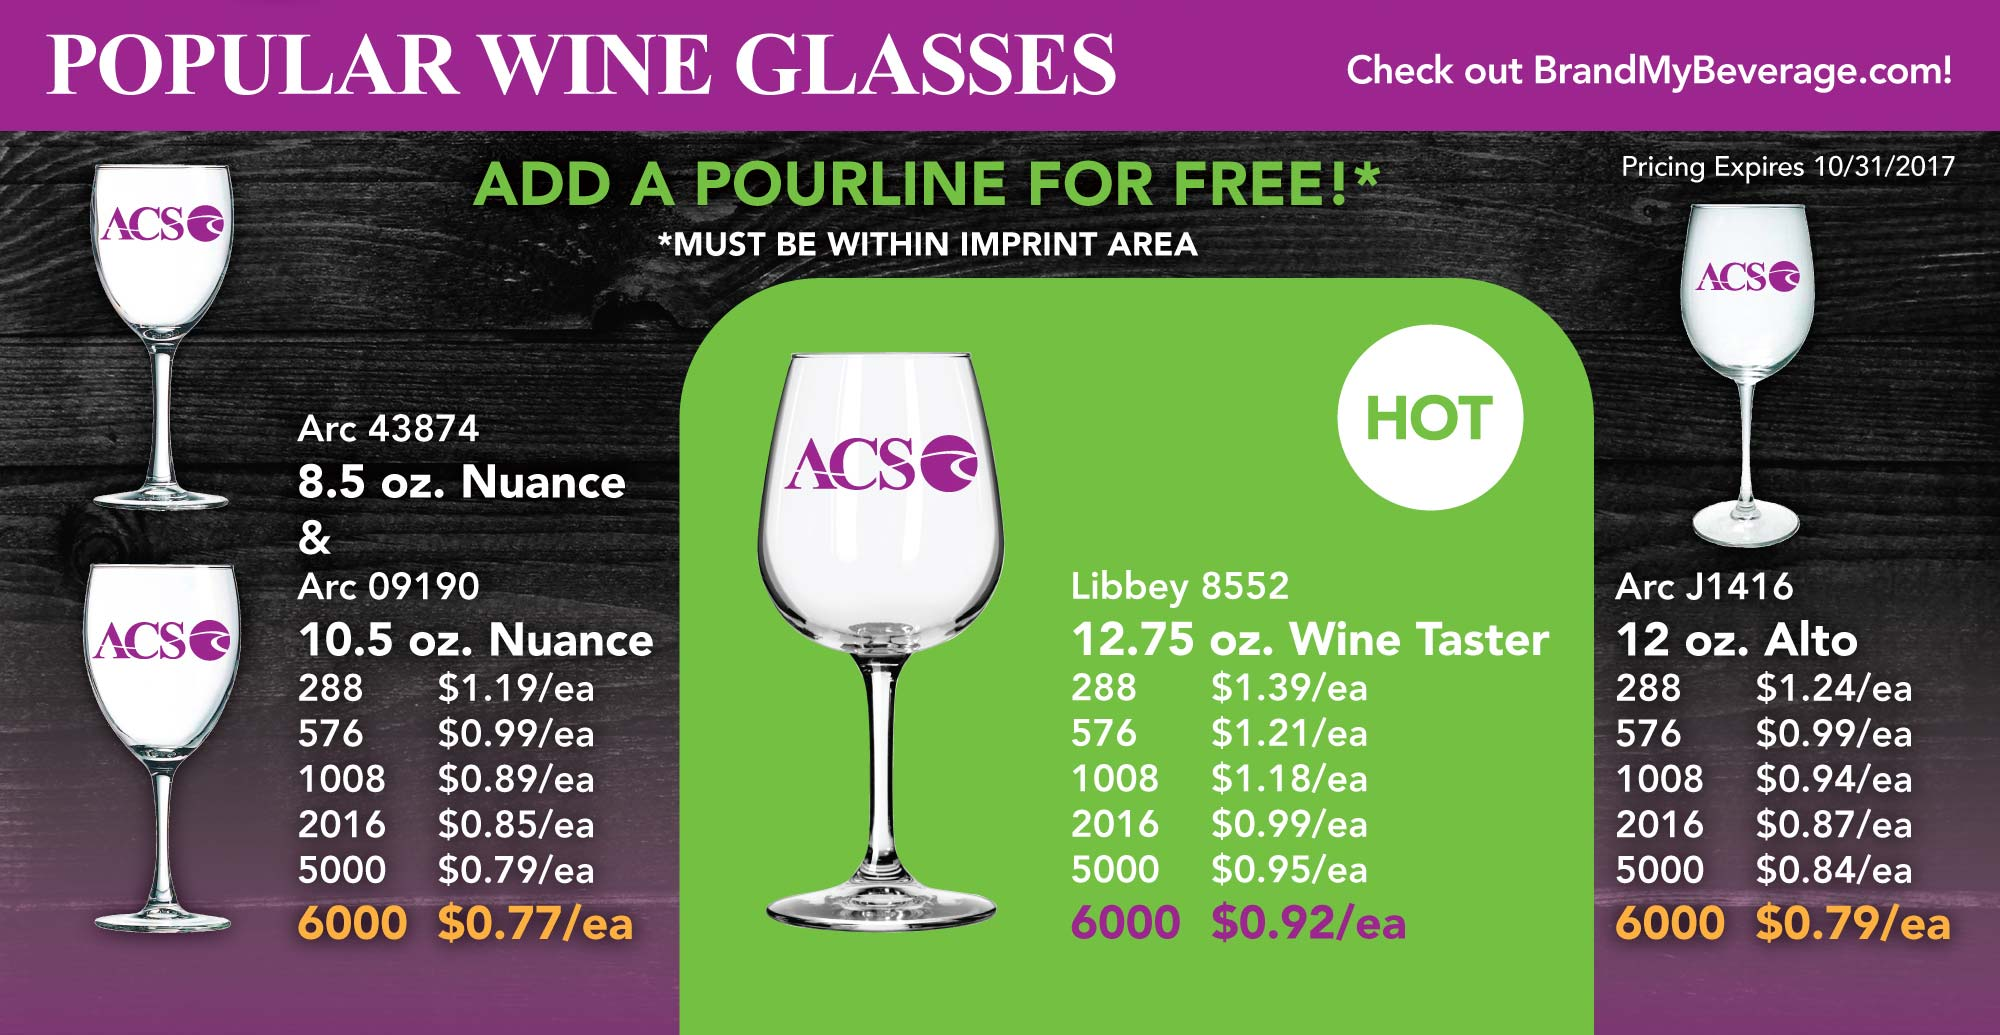 POPULAR WINE GLASSES OF 2017